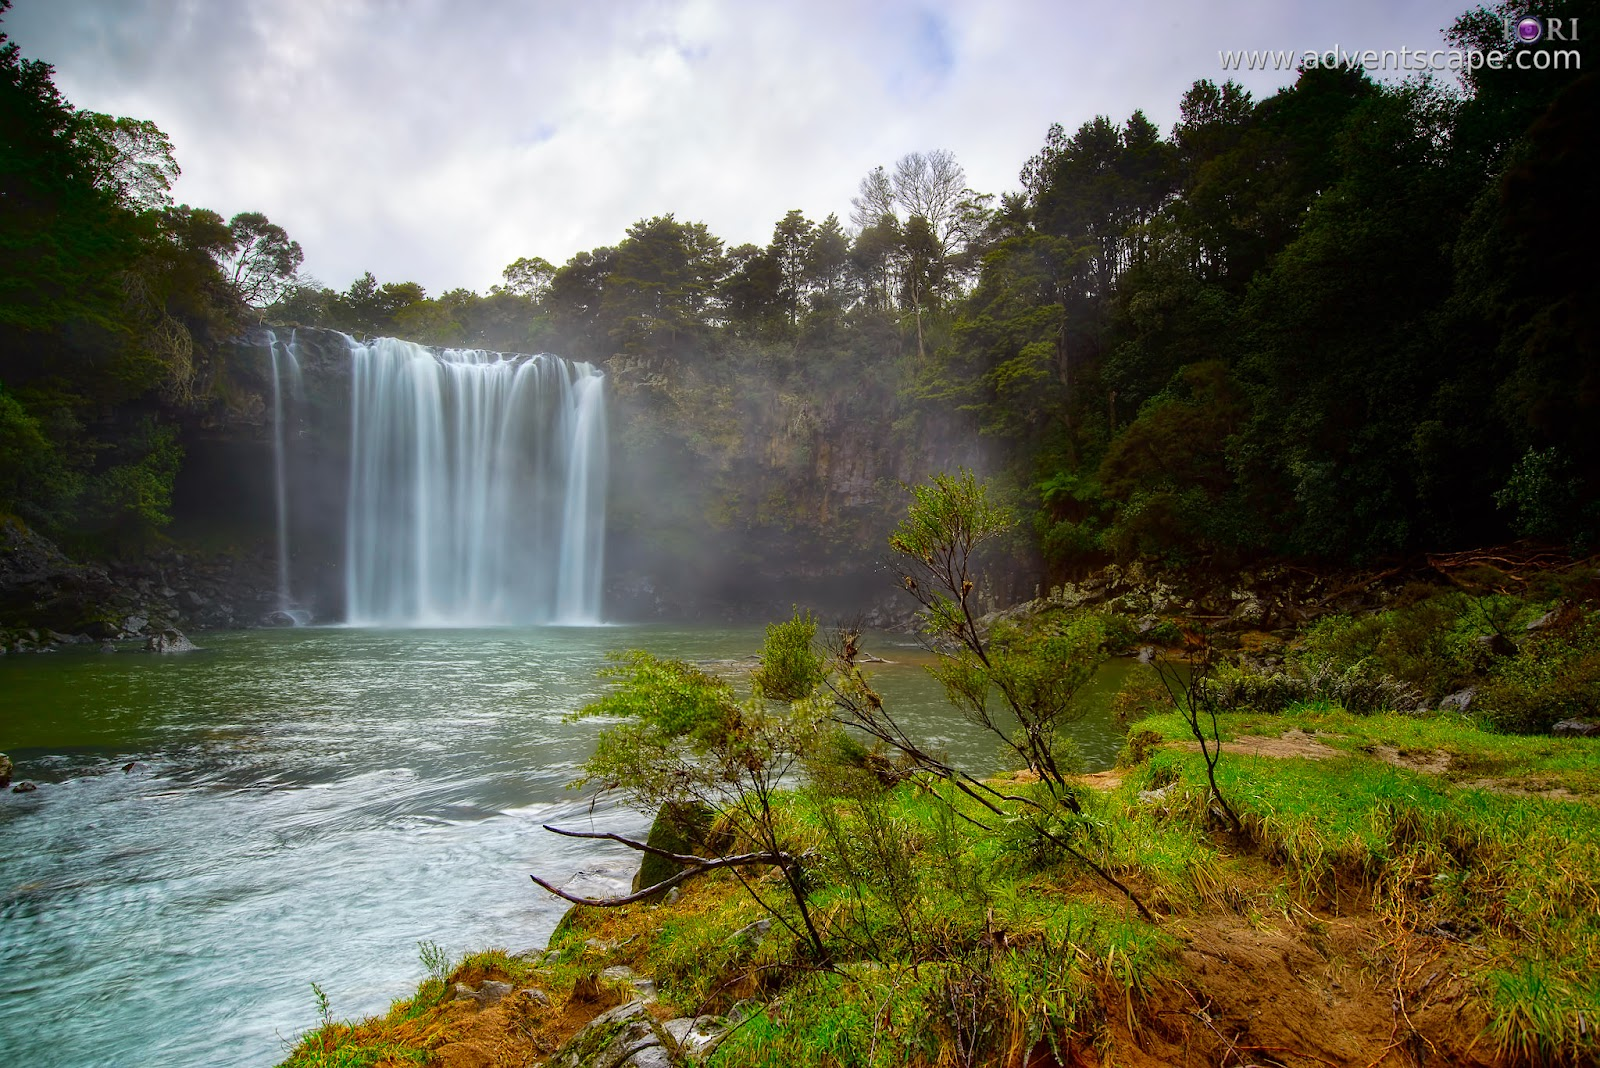 Philip Avellana, iori, Australian Landscape Photographer, adventscape, New Zealand, falls, waterfalls, nature photos, Kerikeri, North Island, tour, travel, Rainbow Falls